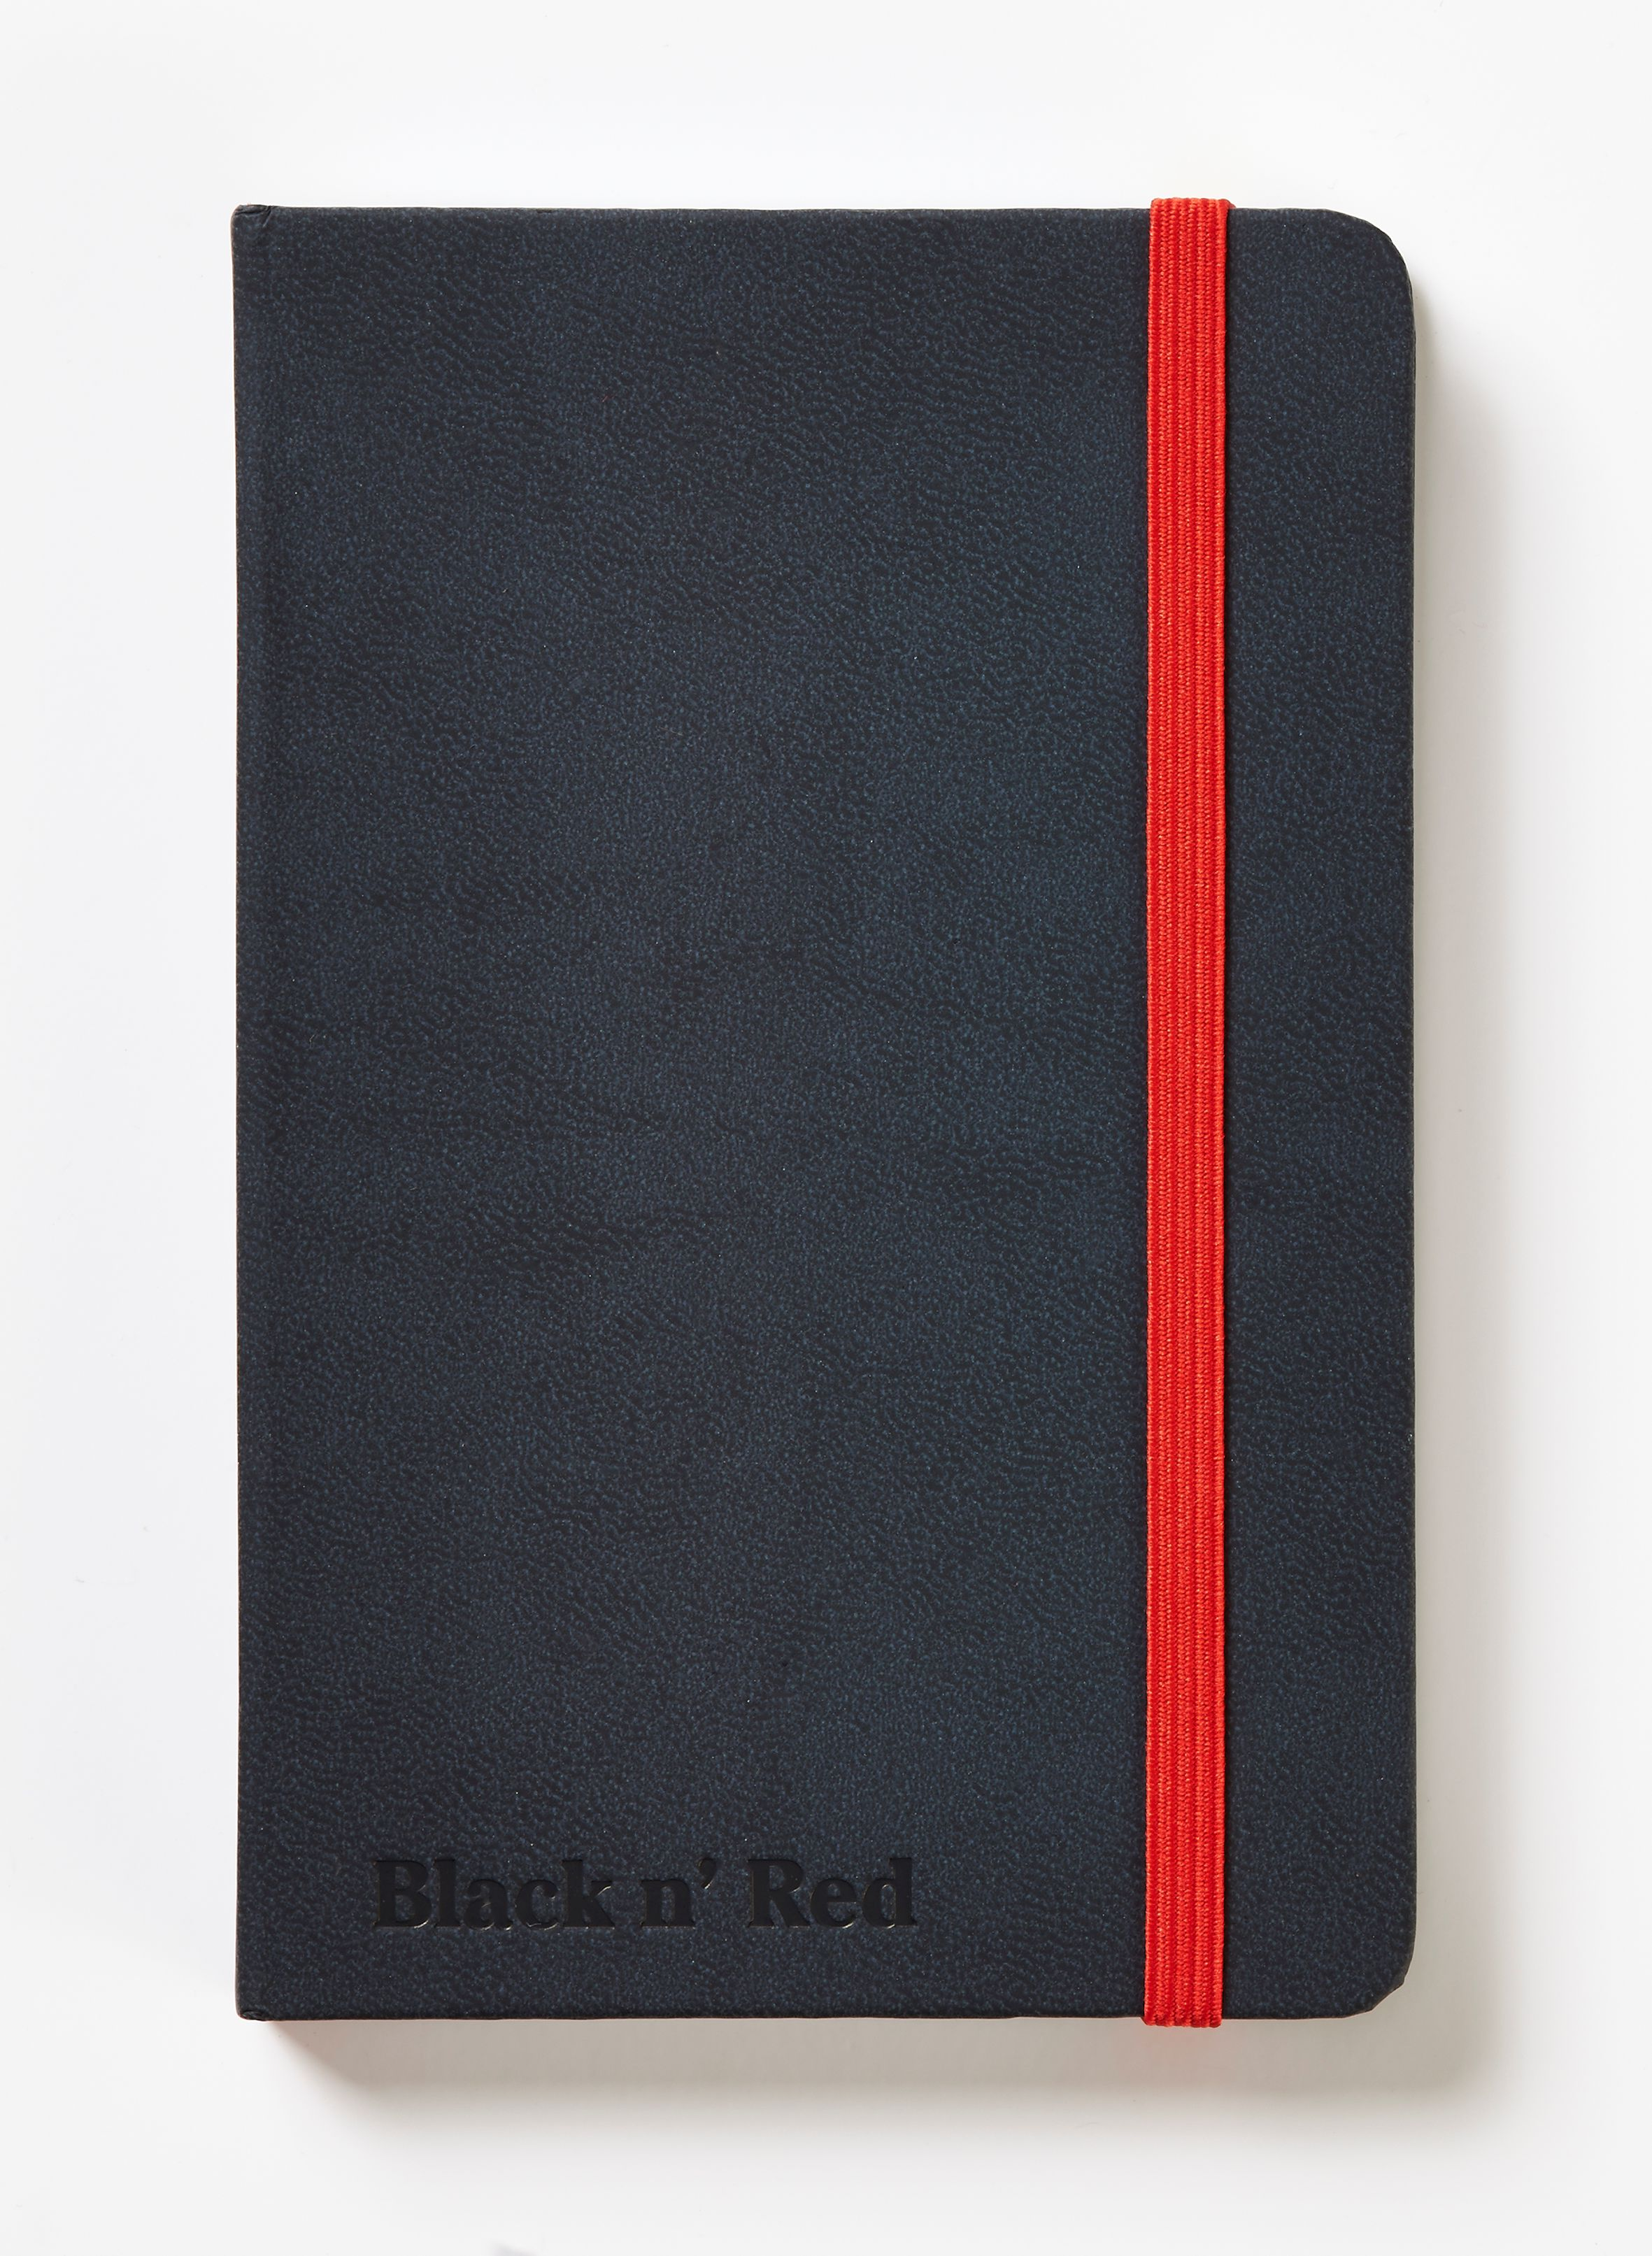 Image for Black By Black n Red Casebound Black Hard Cover Business Journal Ruled With Numbered Pages 144P A6